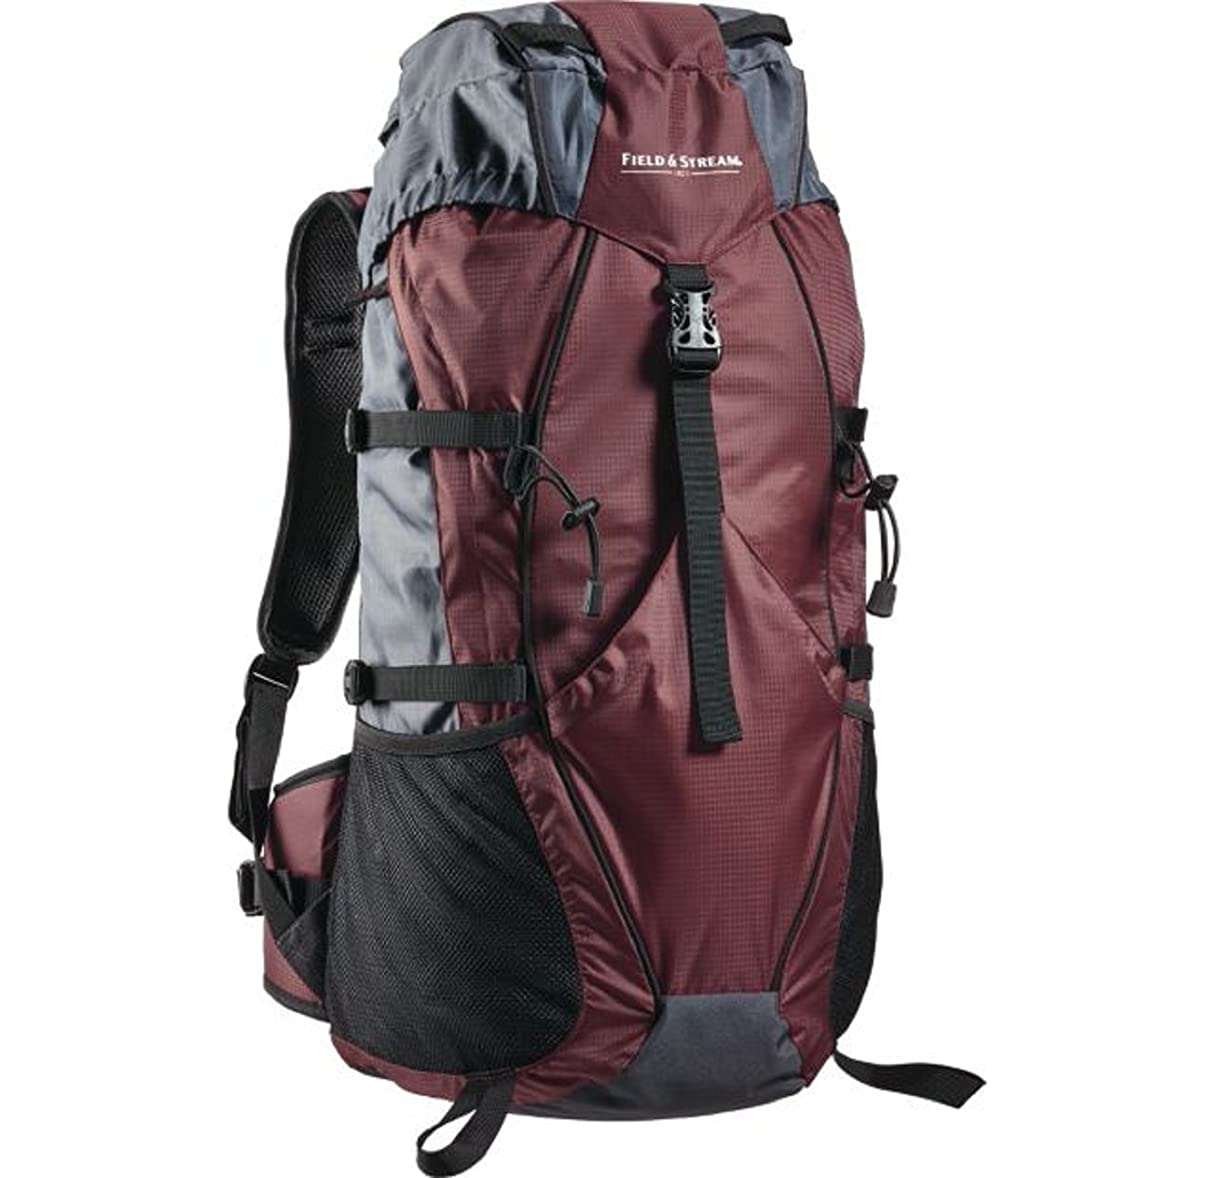 Mountain Scout 45L Internal Frame Pack Large, top-load compartment, Bitter Chocolate